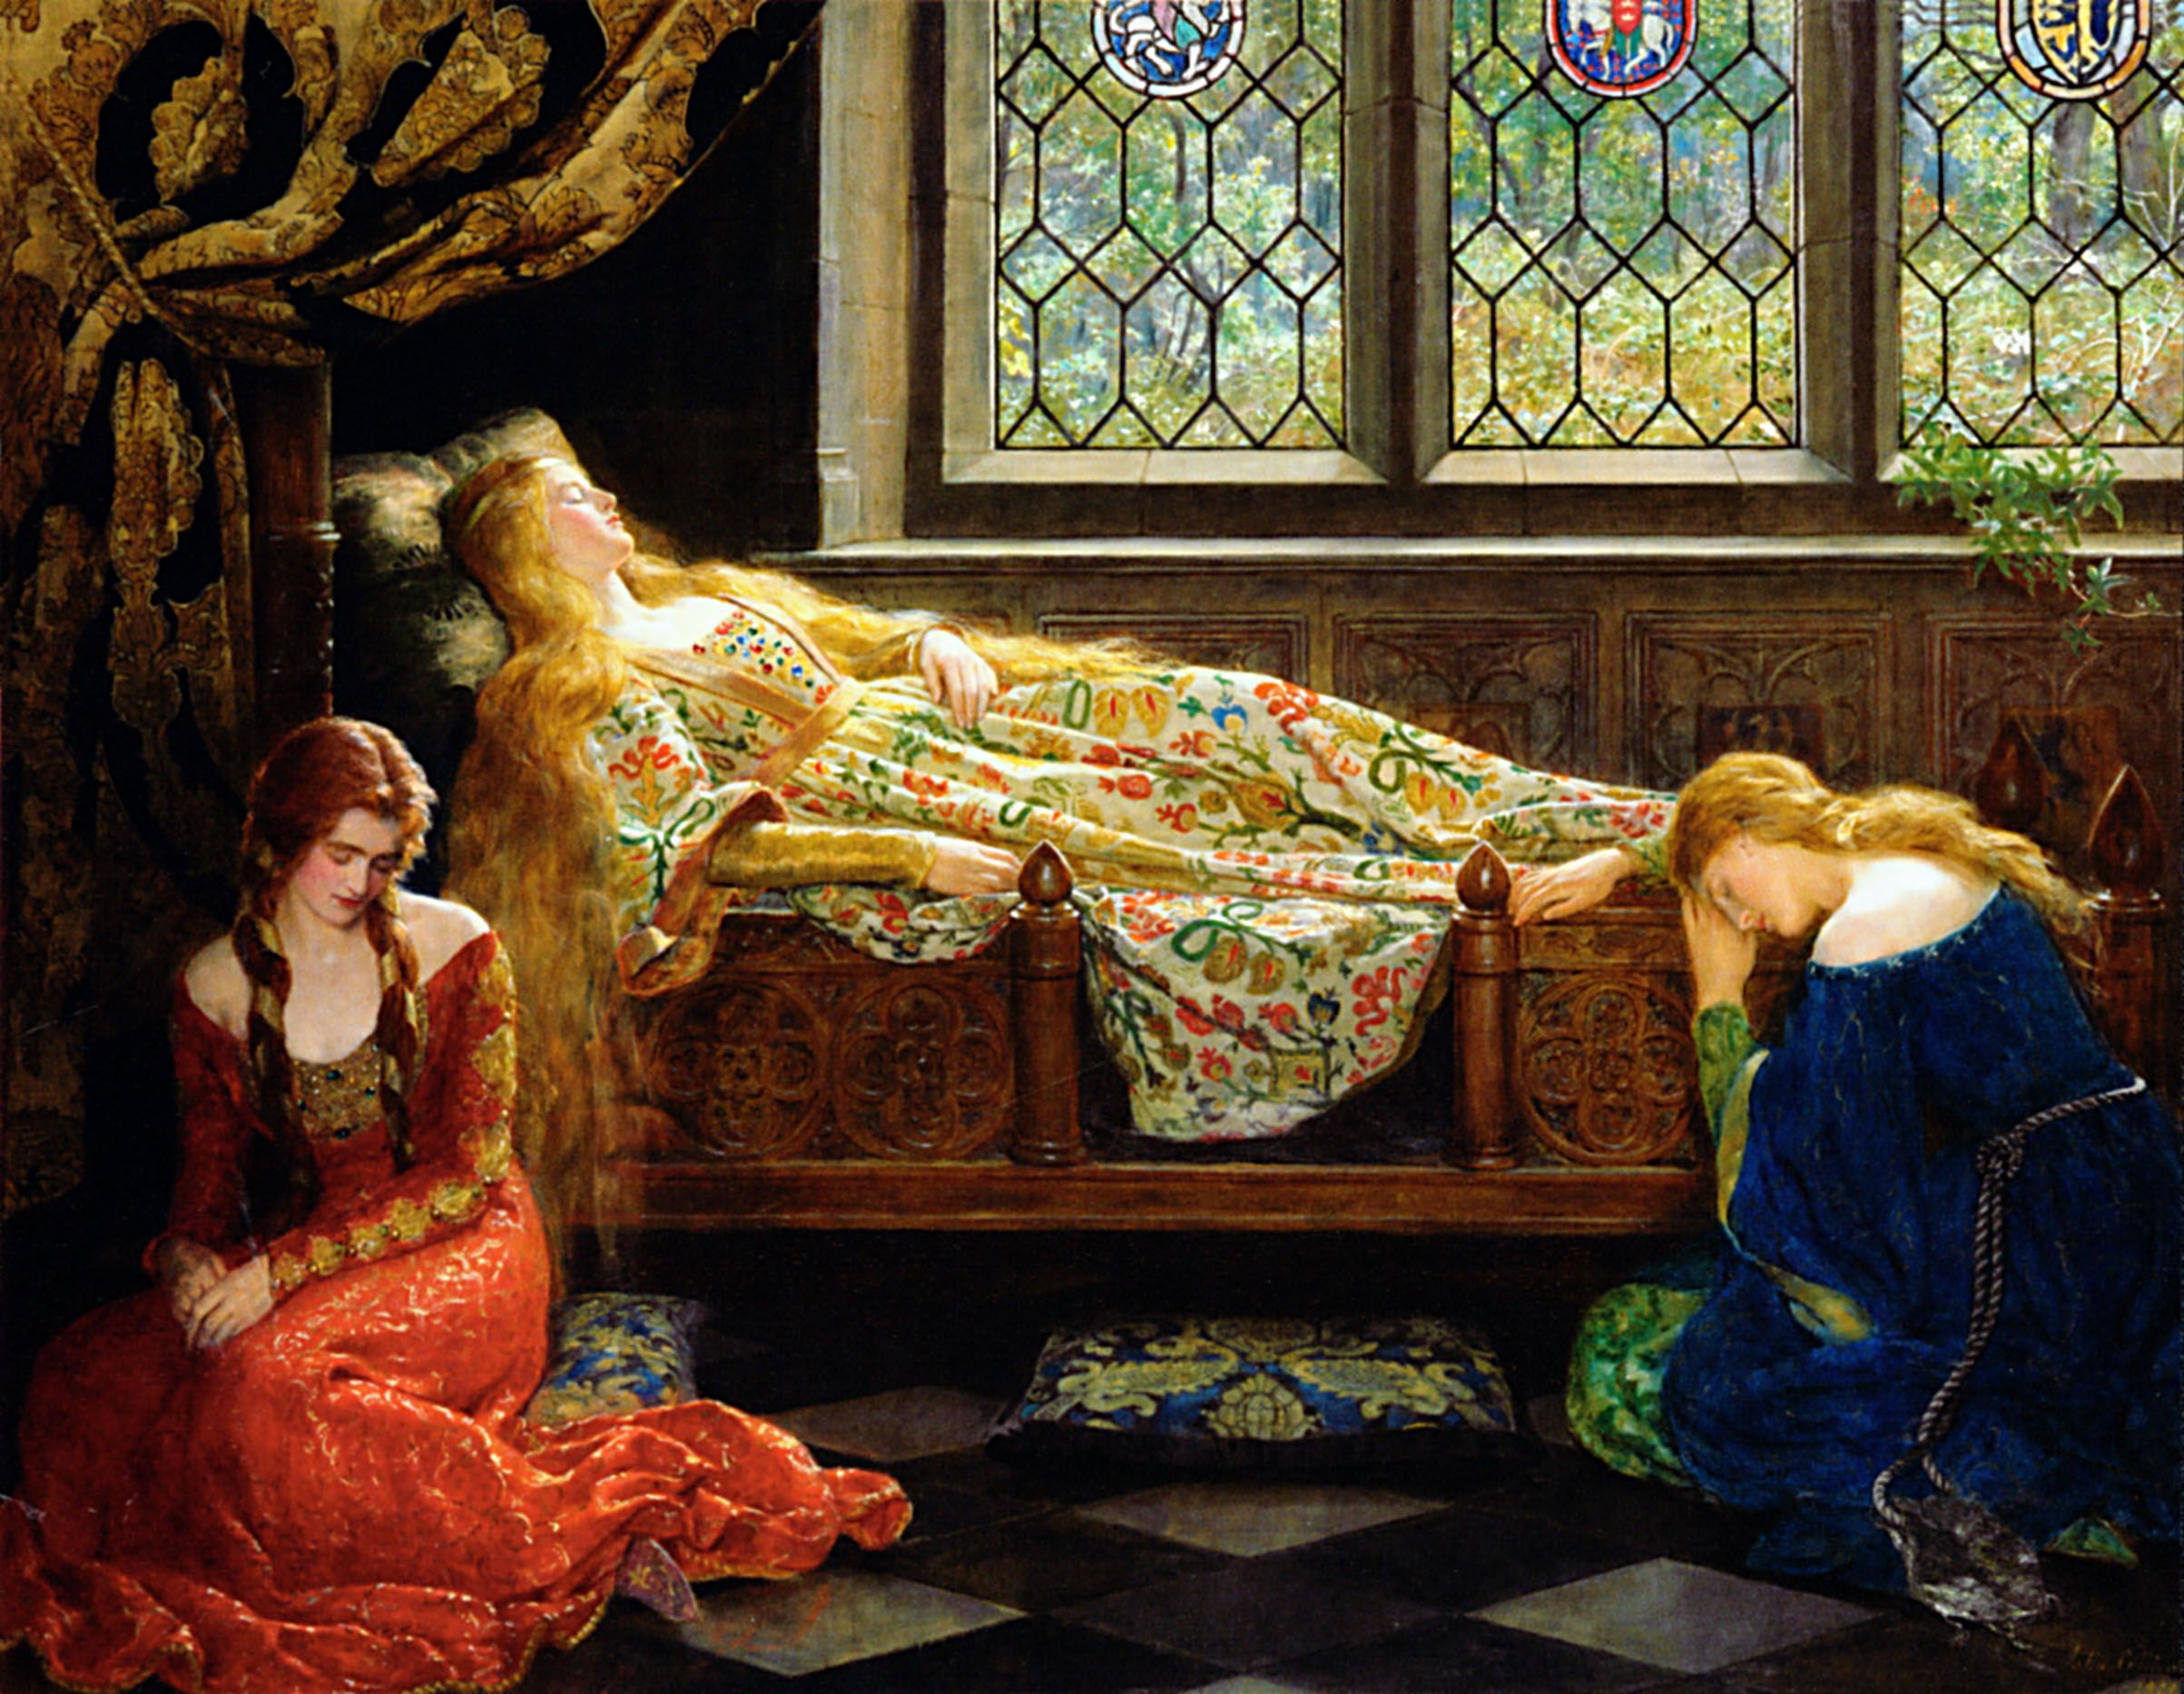 John collier queen guinevere's maying